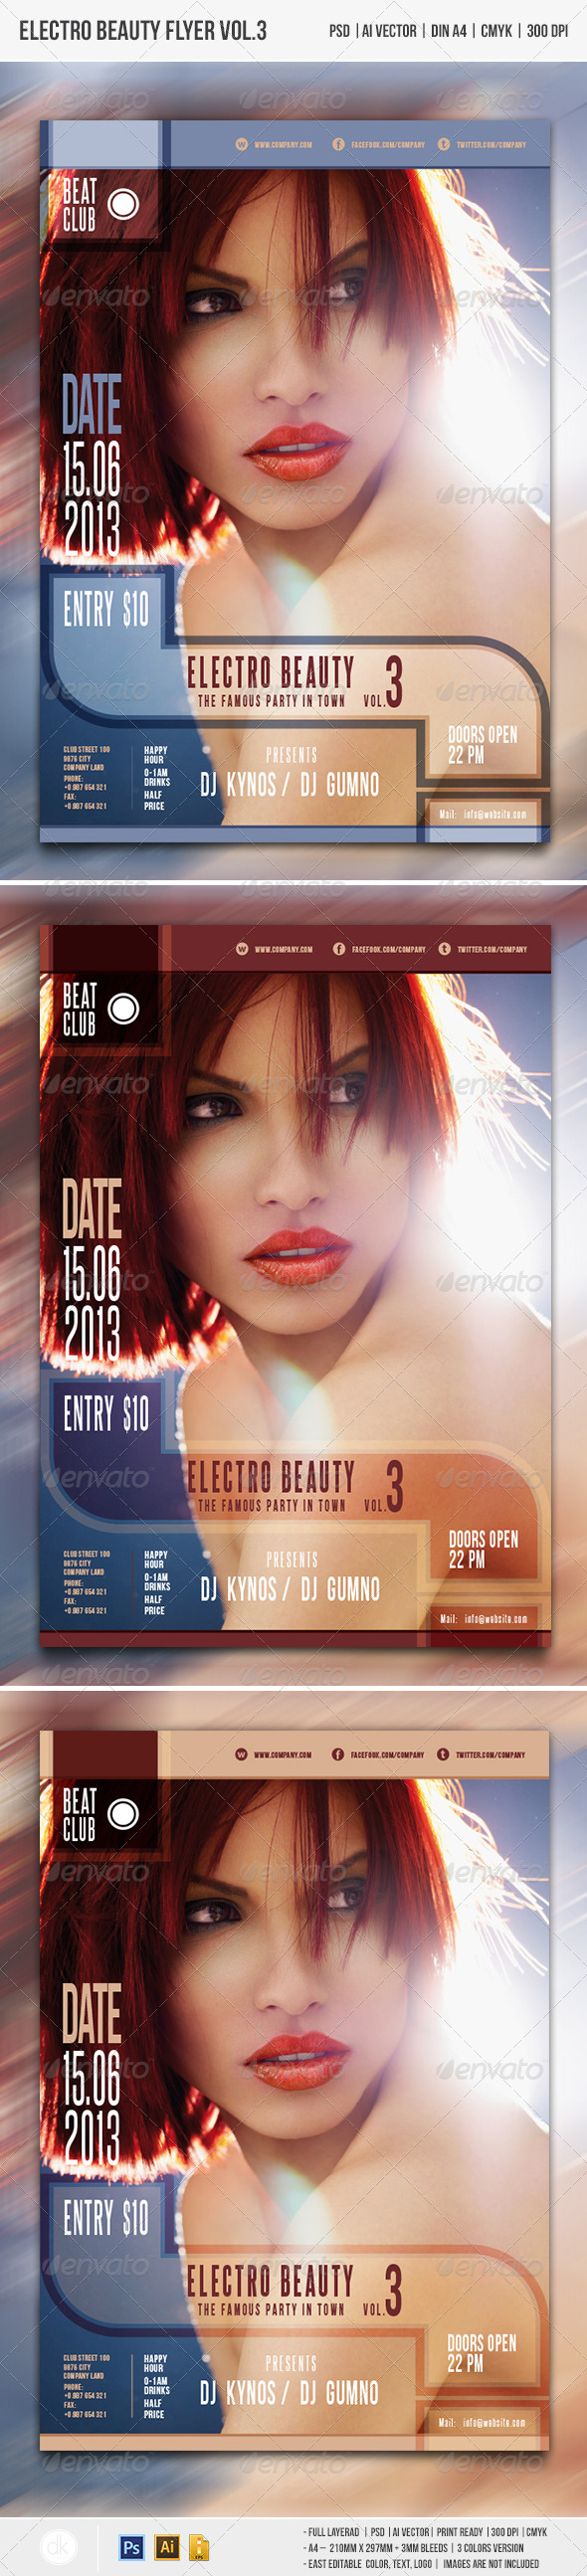 Electro Beauty Flyer Vol.3 - Clubs & Parties Events